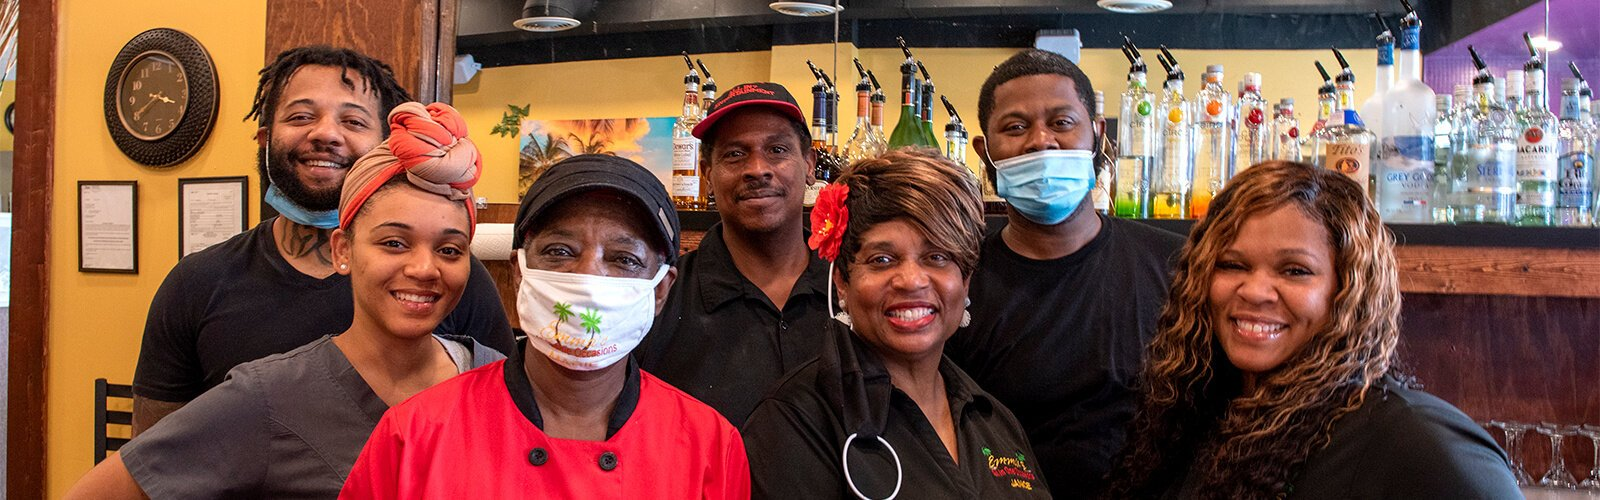 Emma's Soul Food is a family business. From left to right: Monsanna Torbert, Jatonia Torbert, Marie Crawford, Gary Williams, Janice Howard, Montez Williams, Latosha Williams.